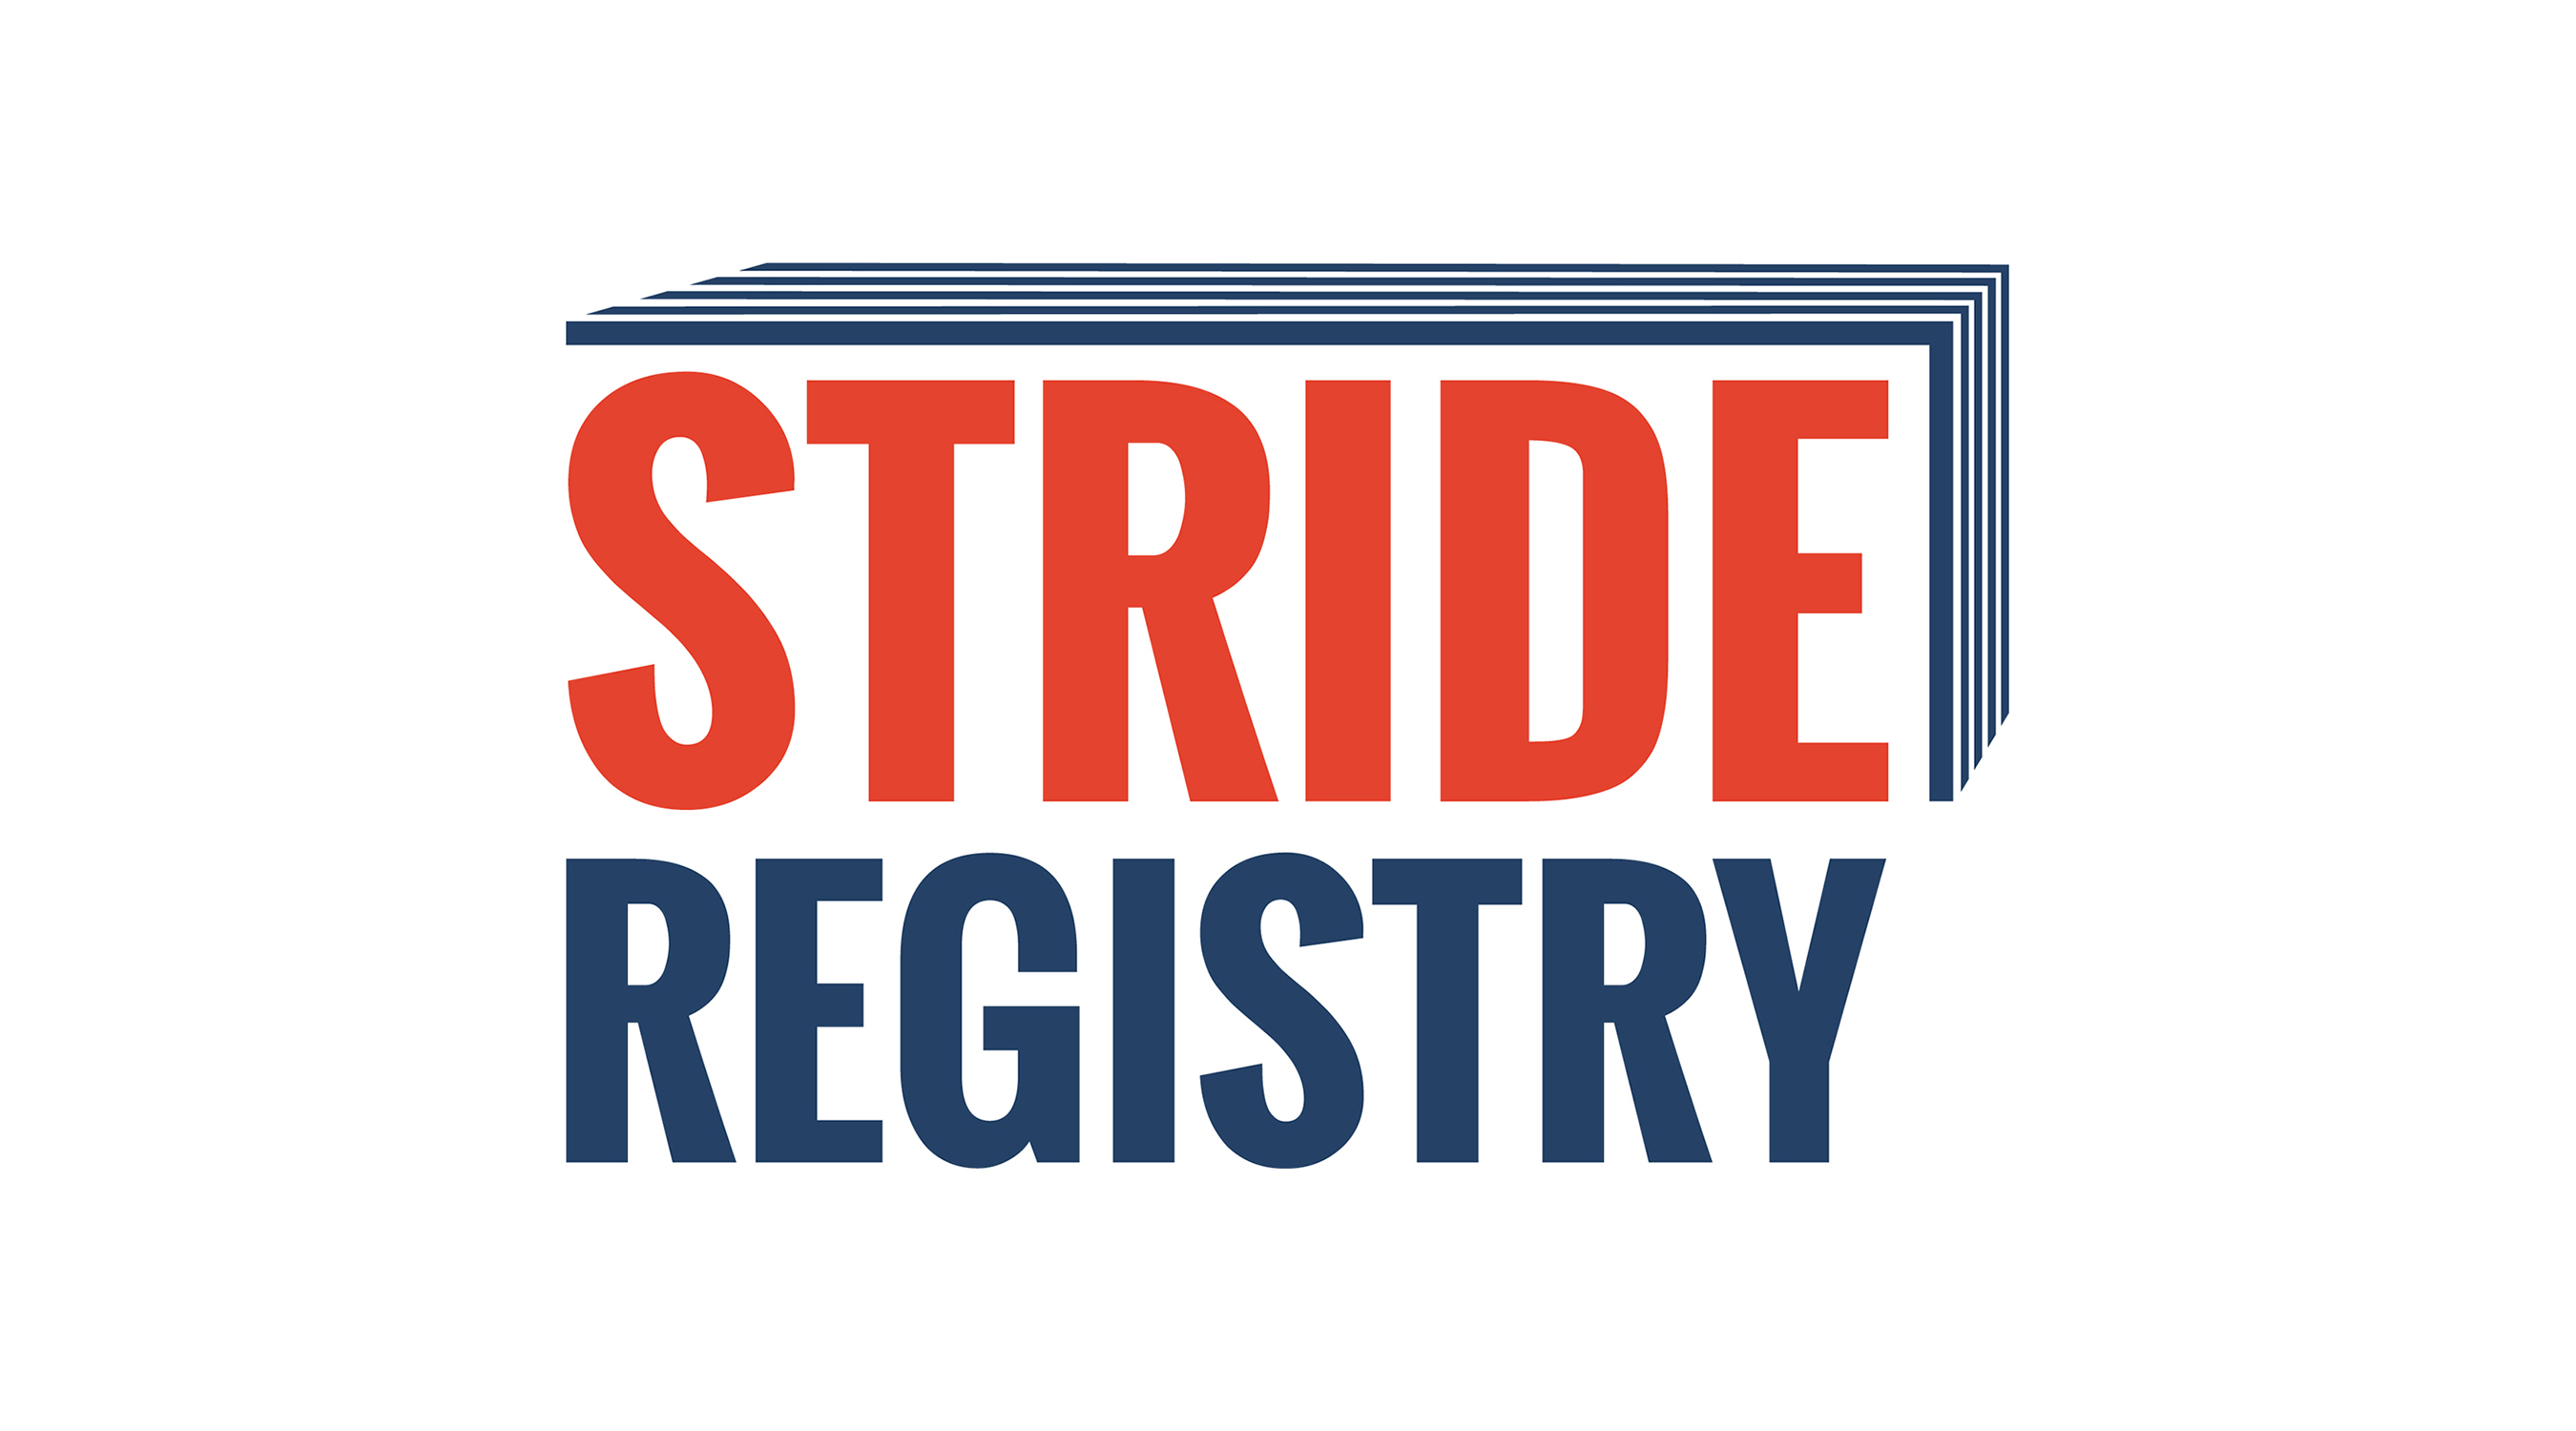 STRIDE Registry Logo